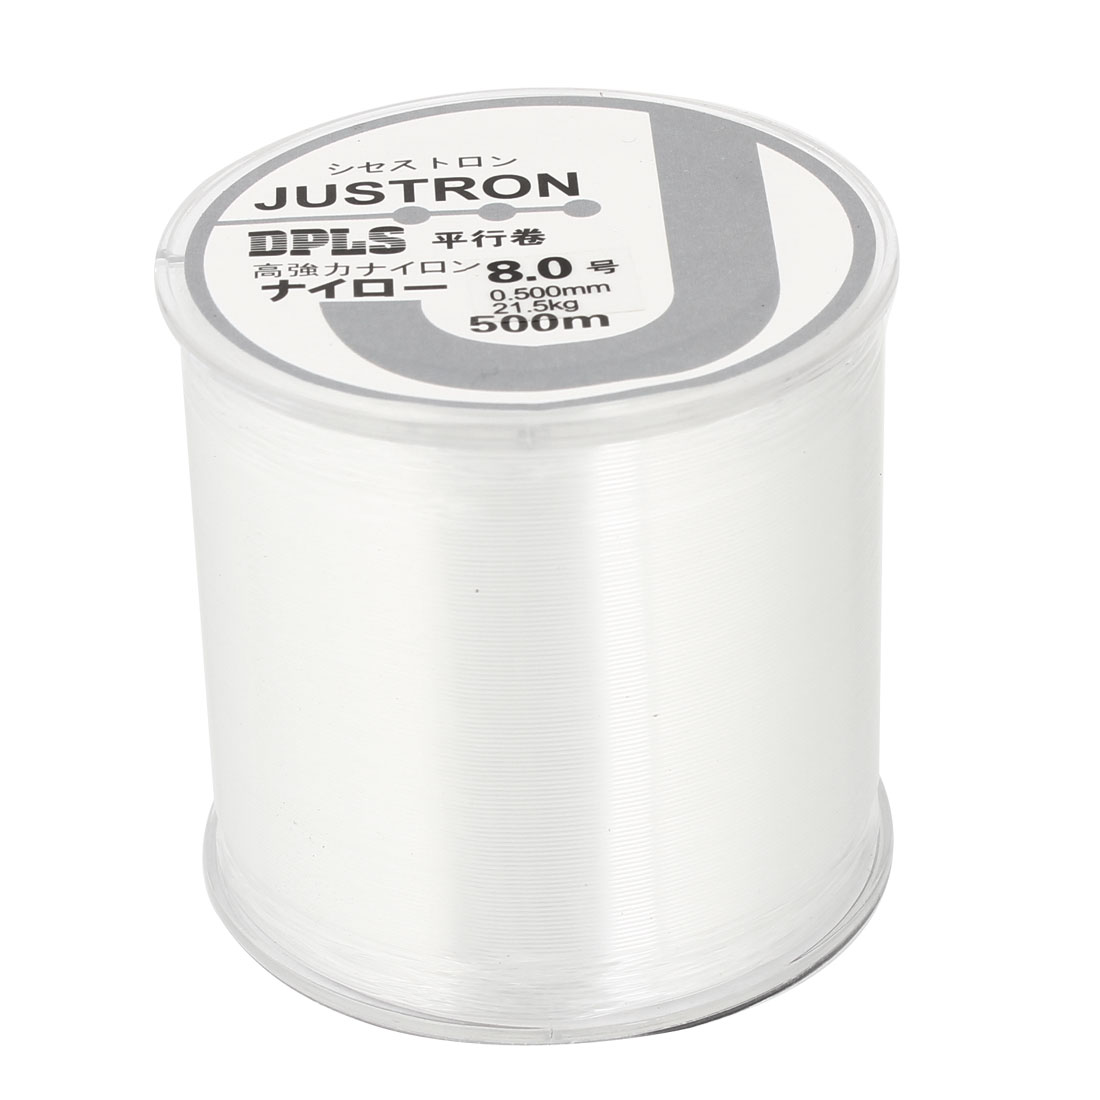 8.0# 0.500mm Diameter 500M Thread 21.5Kg 47.4 lb Fishing Line Spool Clear